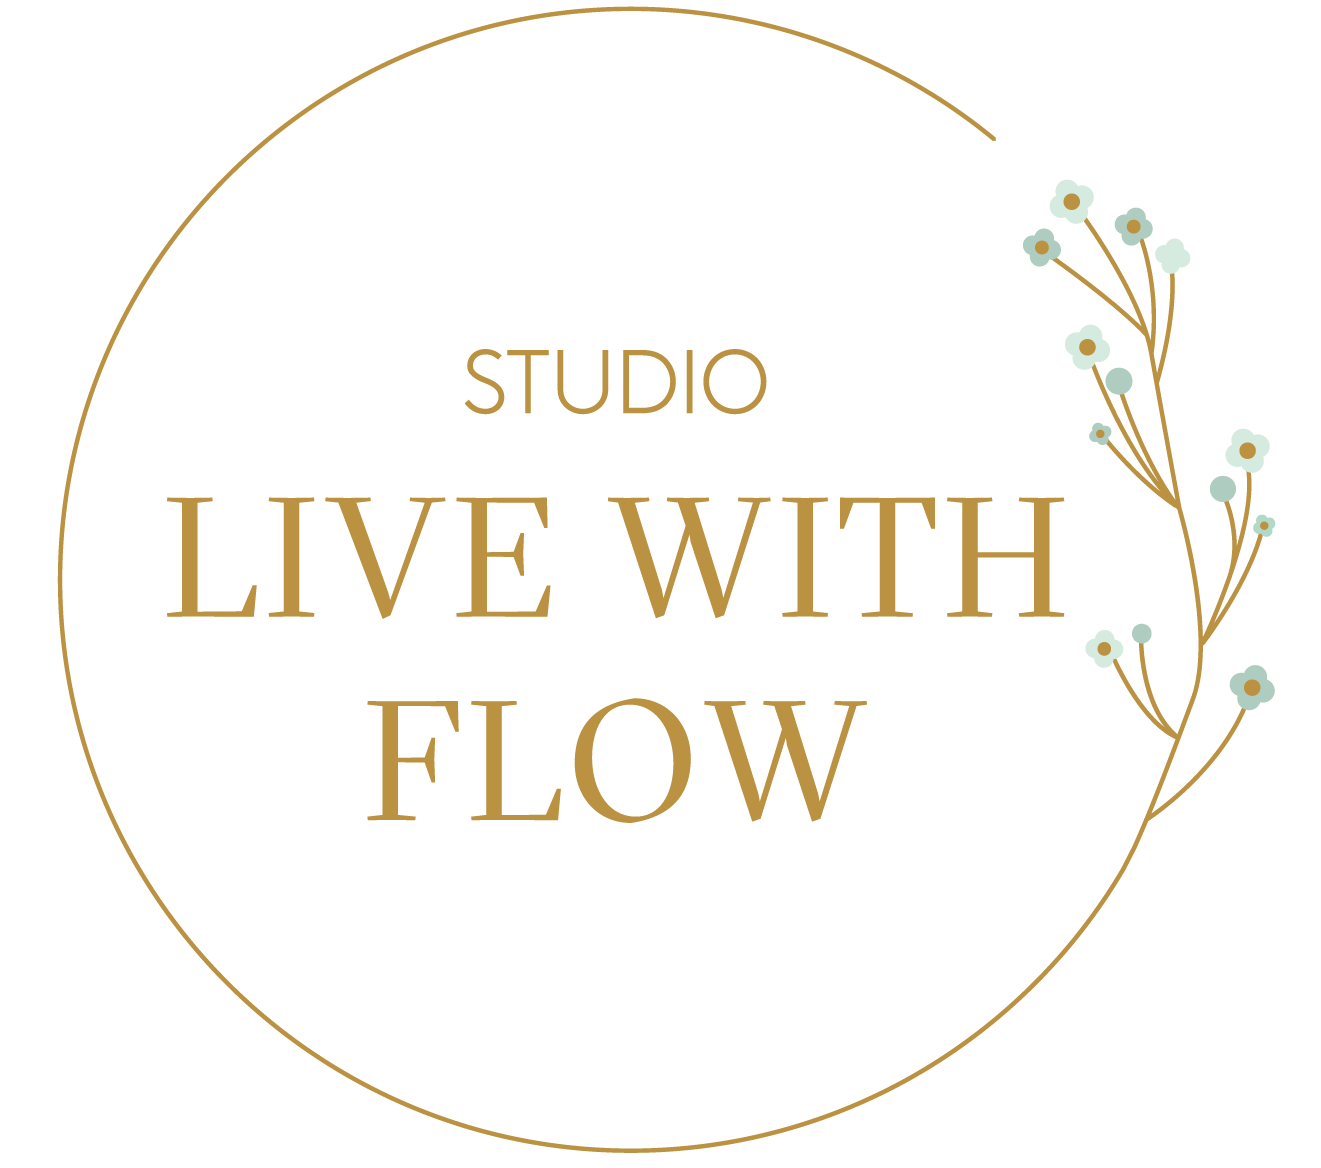 Live with Flow